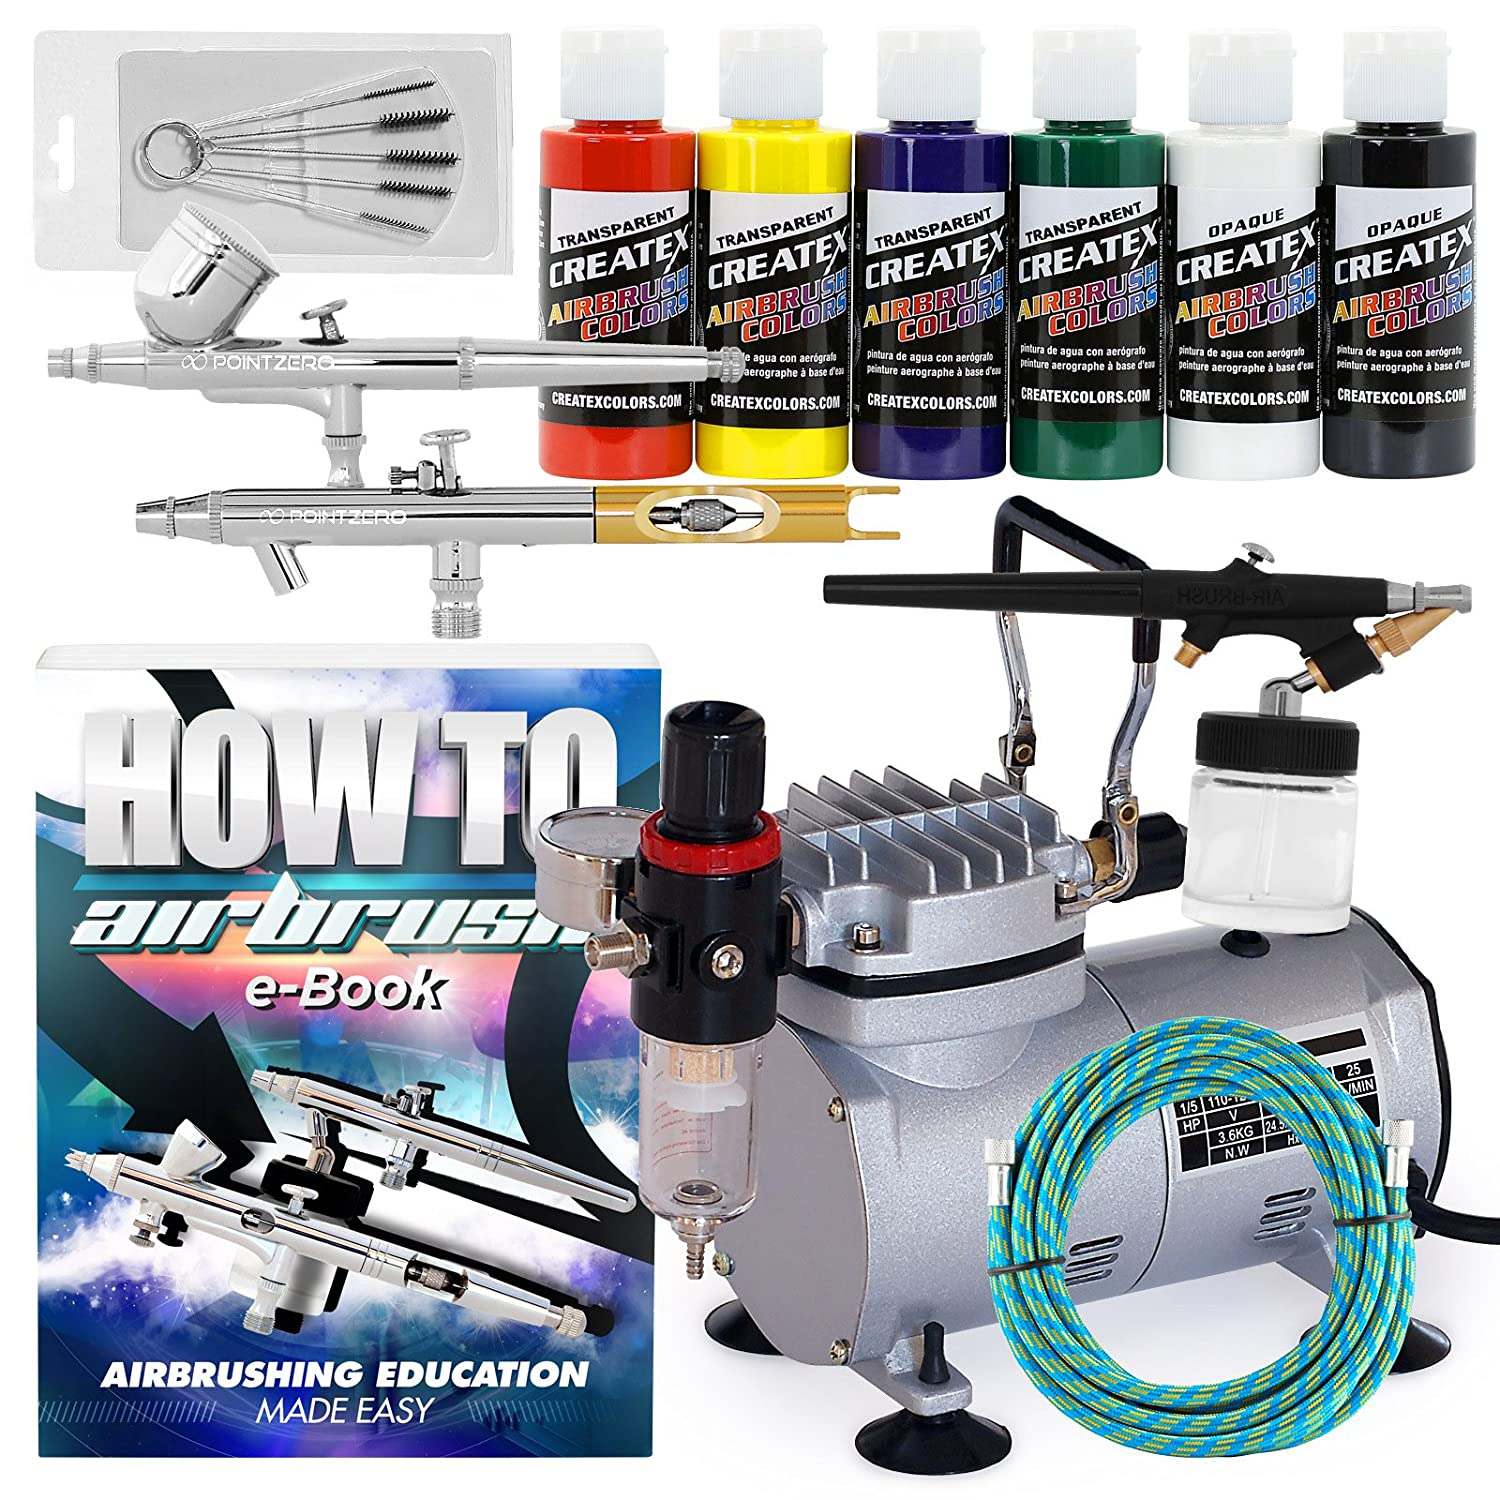 PointZero Multi-Purpose 3 Airbrush Kit w/Compressor and Createx Colors Set of 6 Paints PointZero Airbrush 4336951425